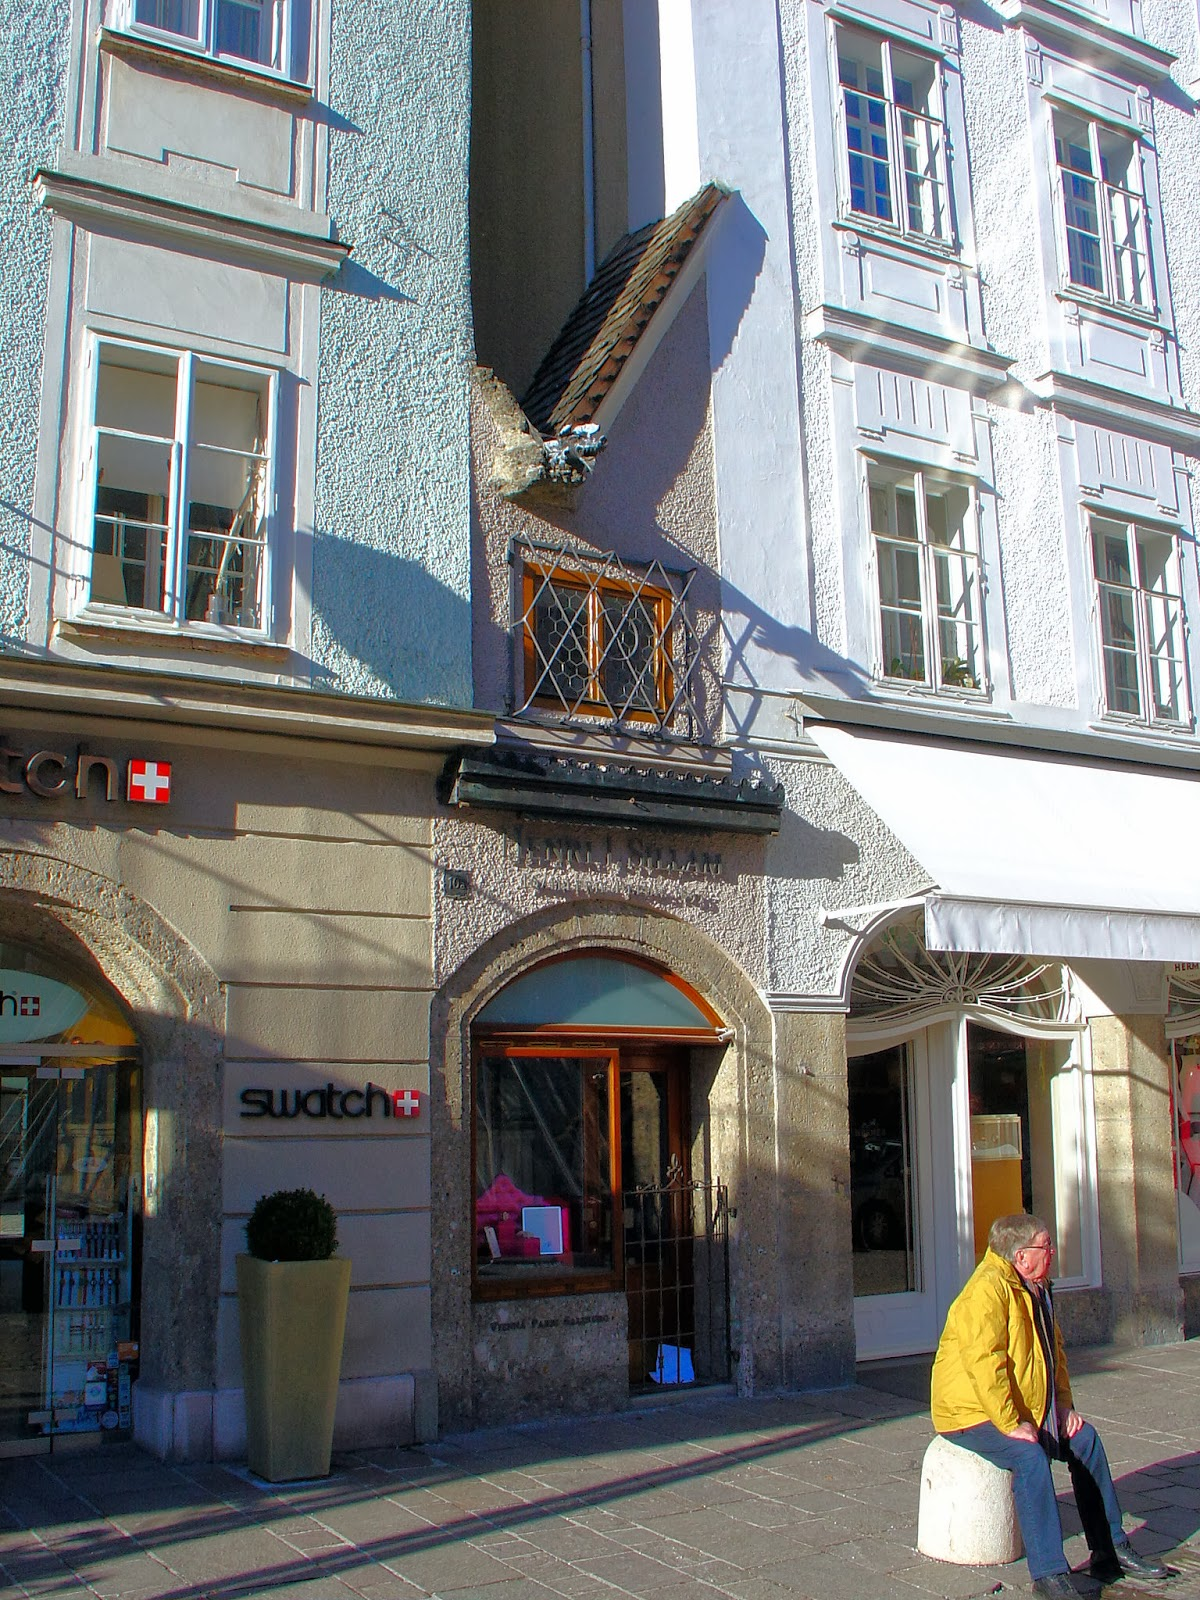 The smallest house in Salzburg can be found in the Alter Market or Old Market square tucked between the Domplatz and Getreidegasse shopping street also the location of Mozart's birthplace.